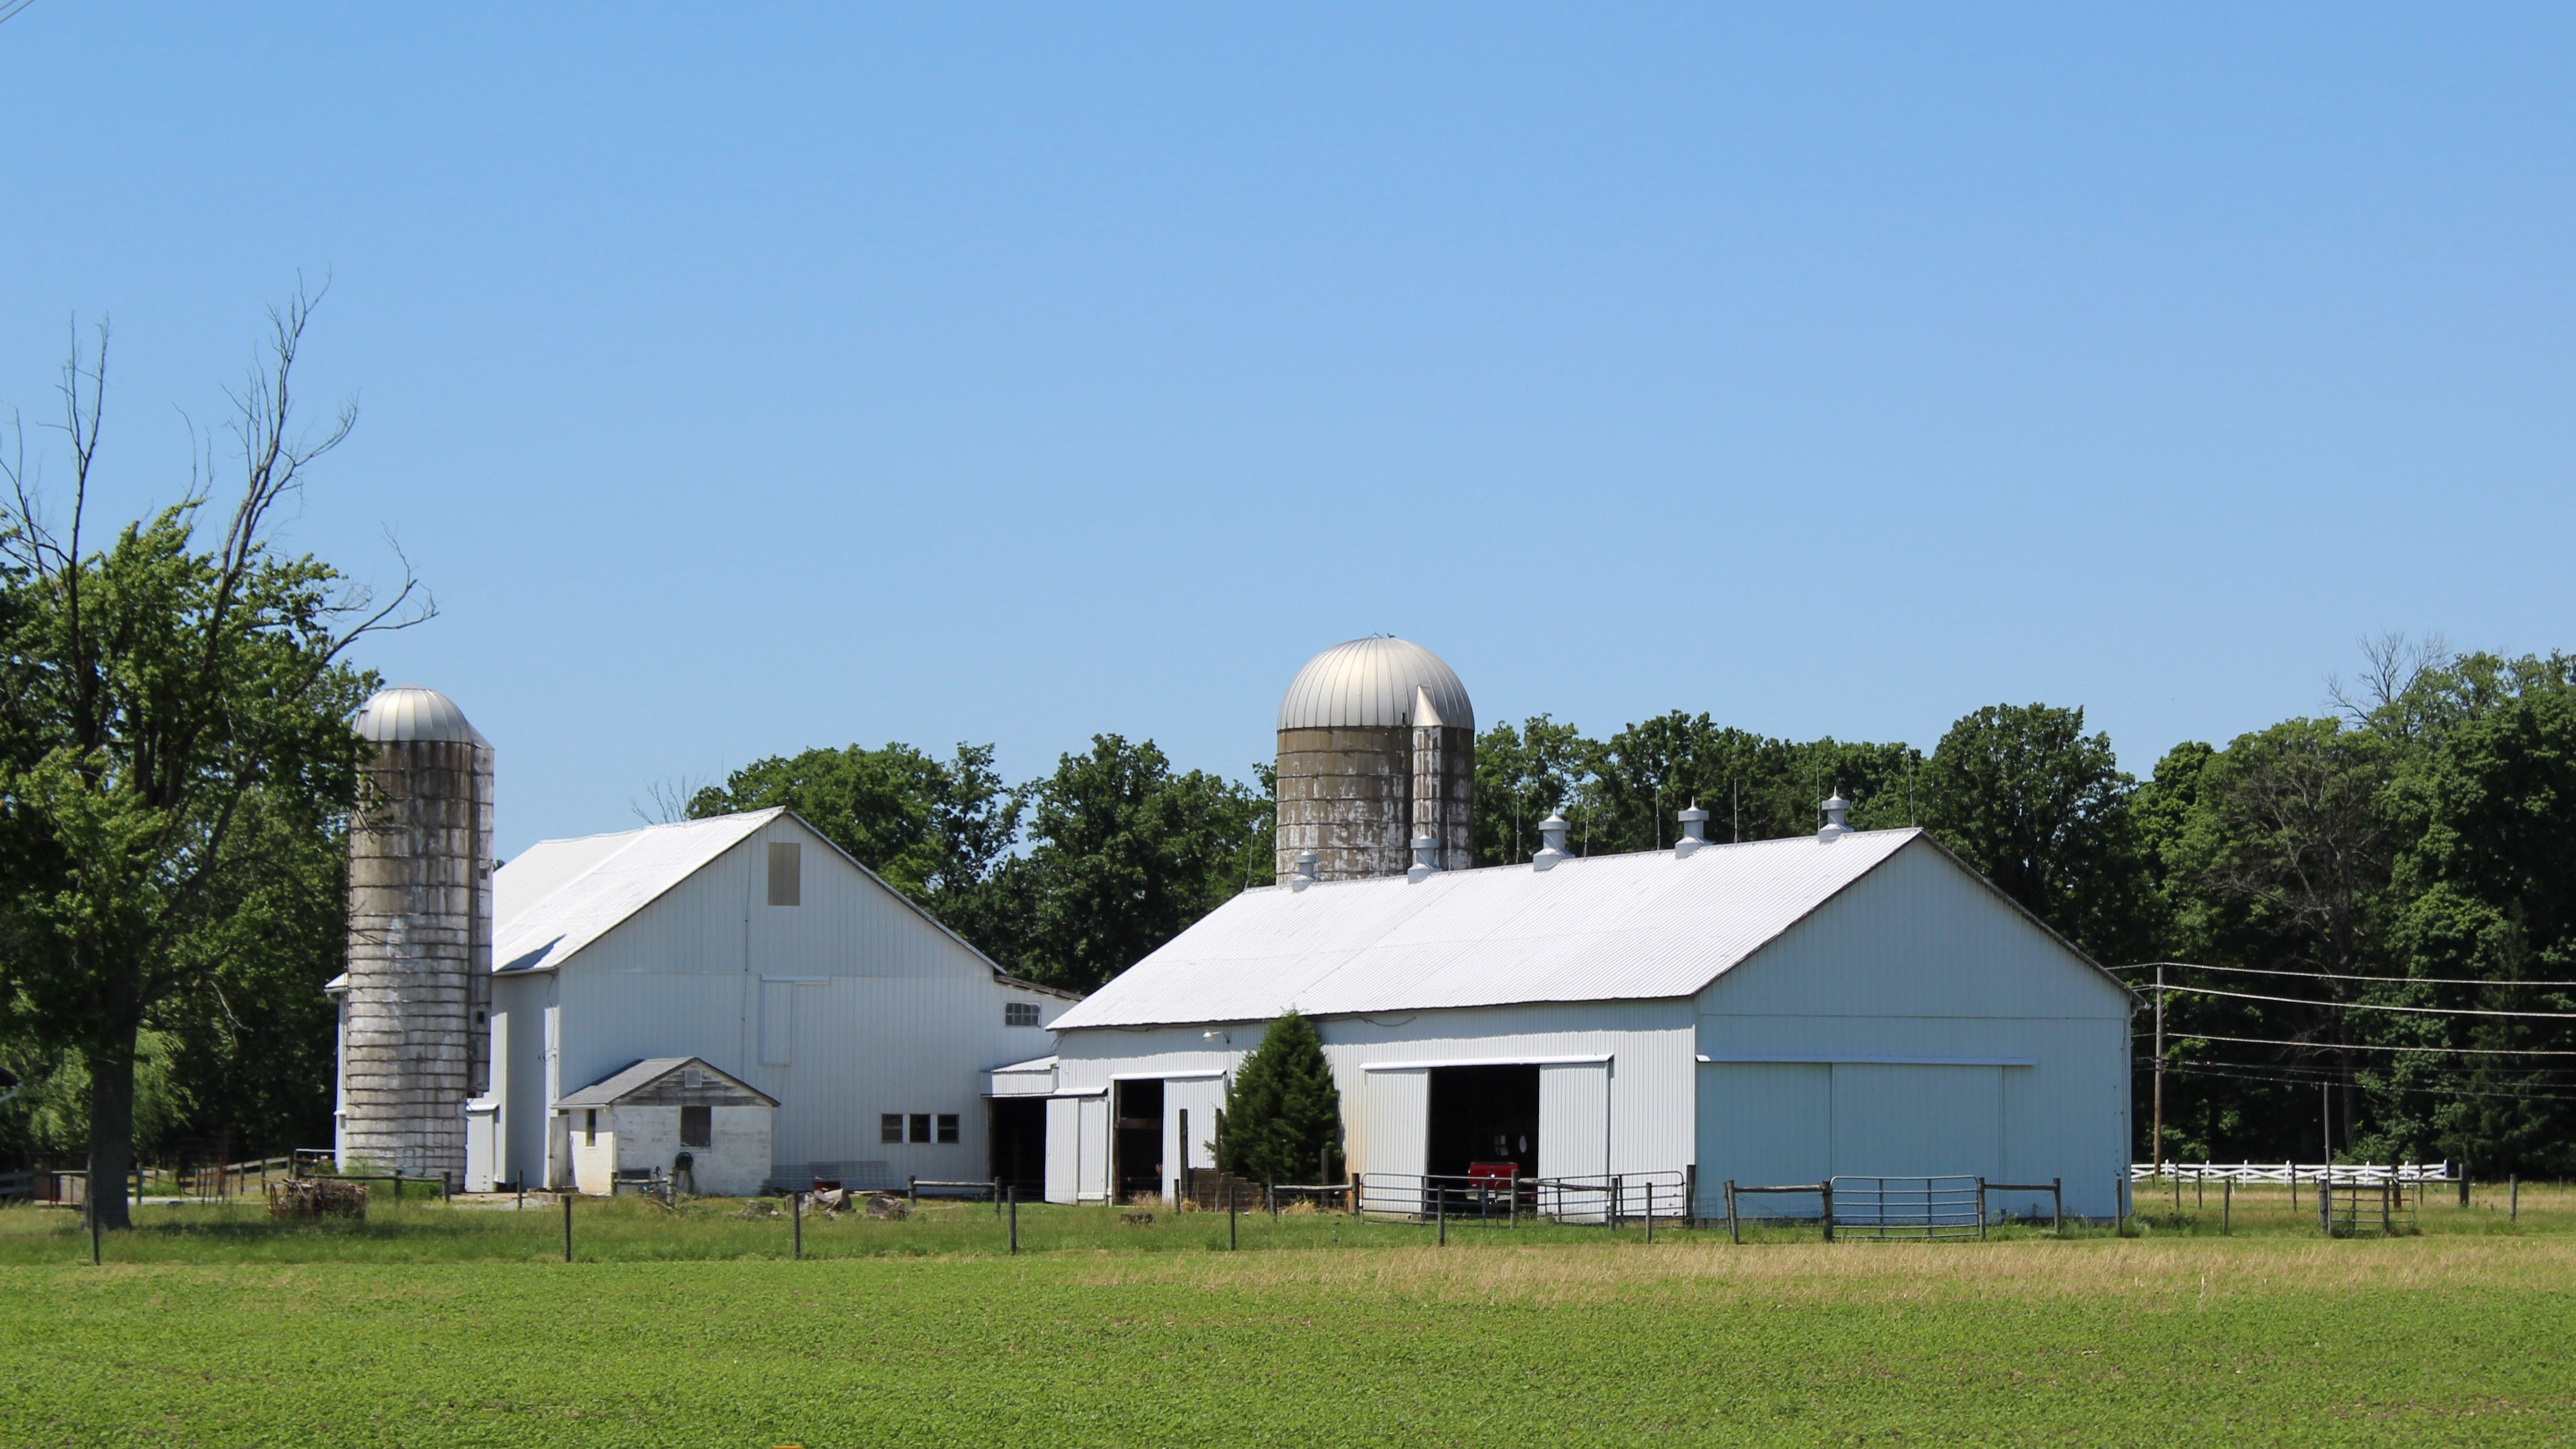 Free stock photo of farm, ohio, silo, spring landscape